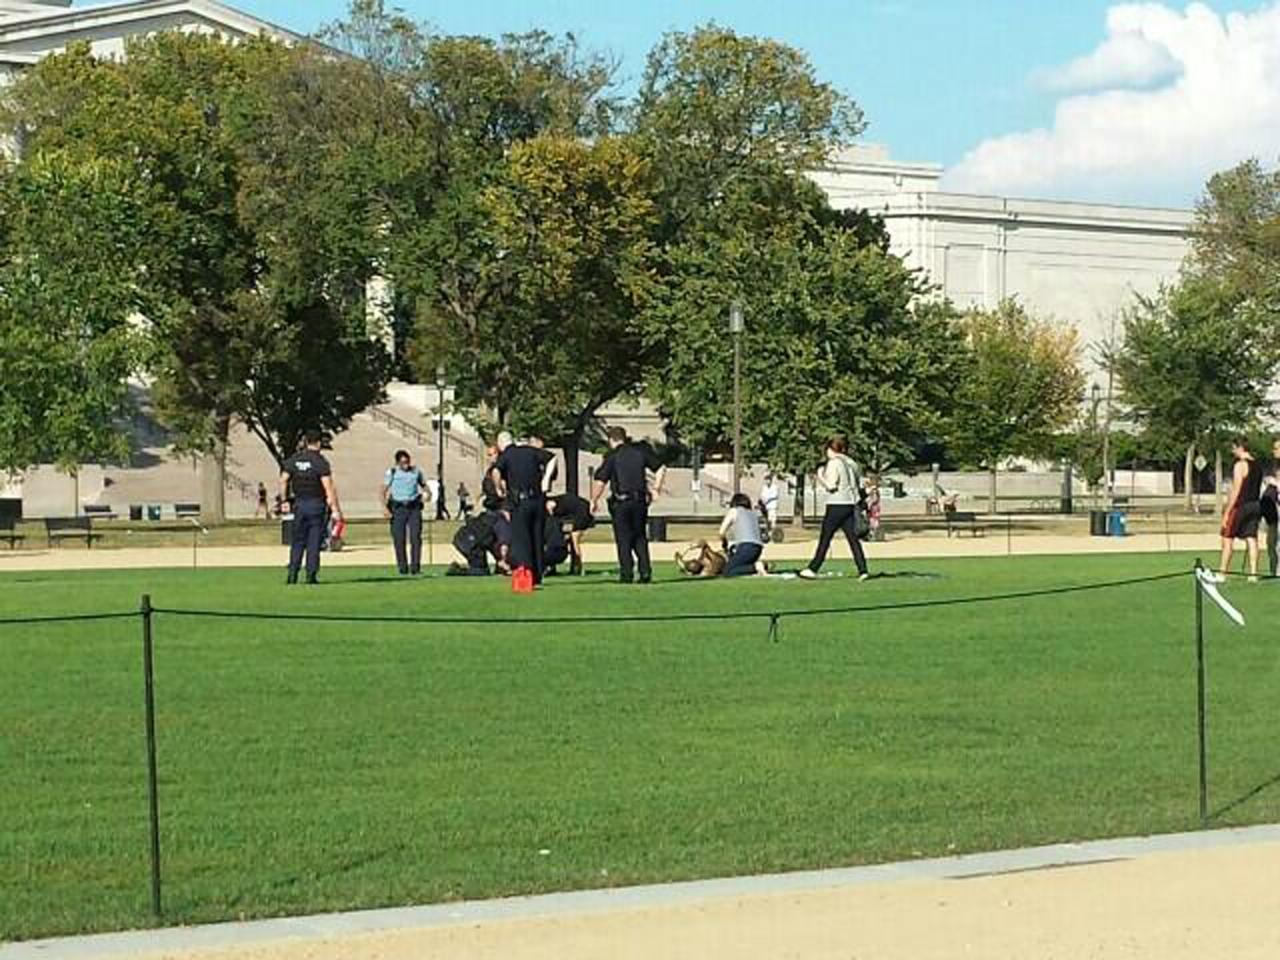 First responders and people assist a man who apparently set himself on fire at the National Mall in Washington in this October 4, 2013 handout photo by Vanessa Sink. The man was rushed to a local hospital, officials said, and was conscious and breathing when he was taken to the hospital. REUTERS/Vanessa Sink/Handout via Reuters (UNITED STATES - Tags: CIVIL UNREST HEALTH SOCIETY) 